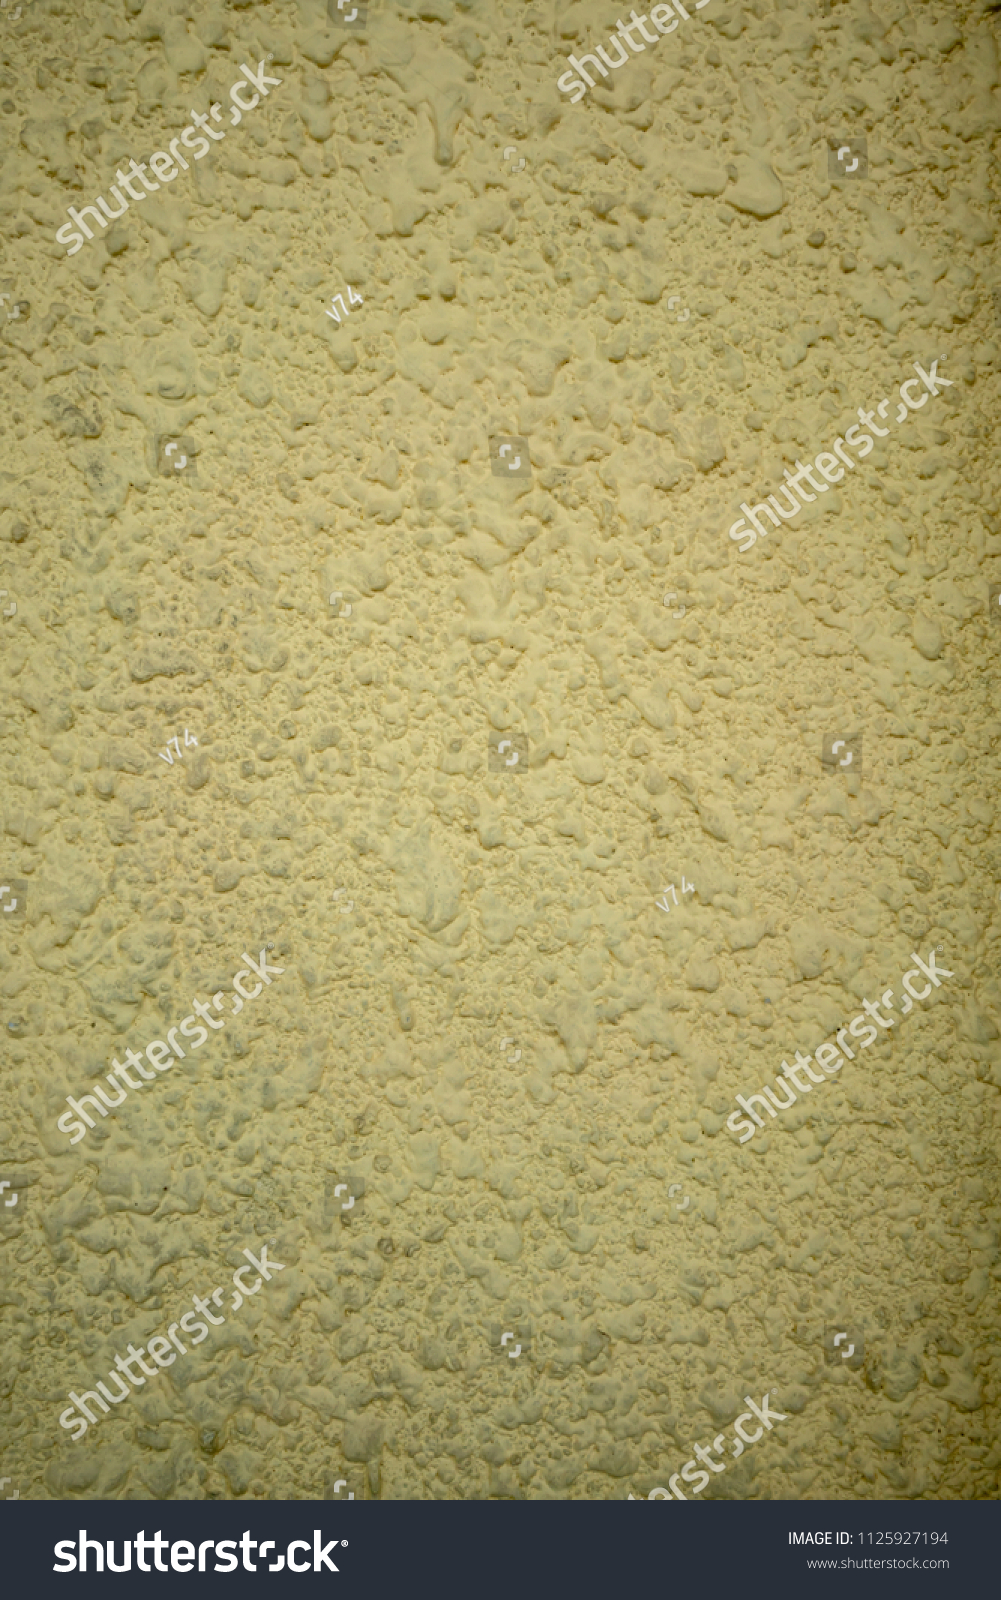 Beautiful Decorative Concrete Wall Composition - The Wall Art ...